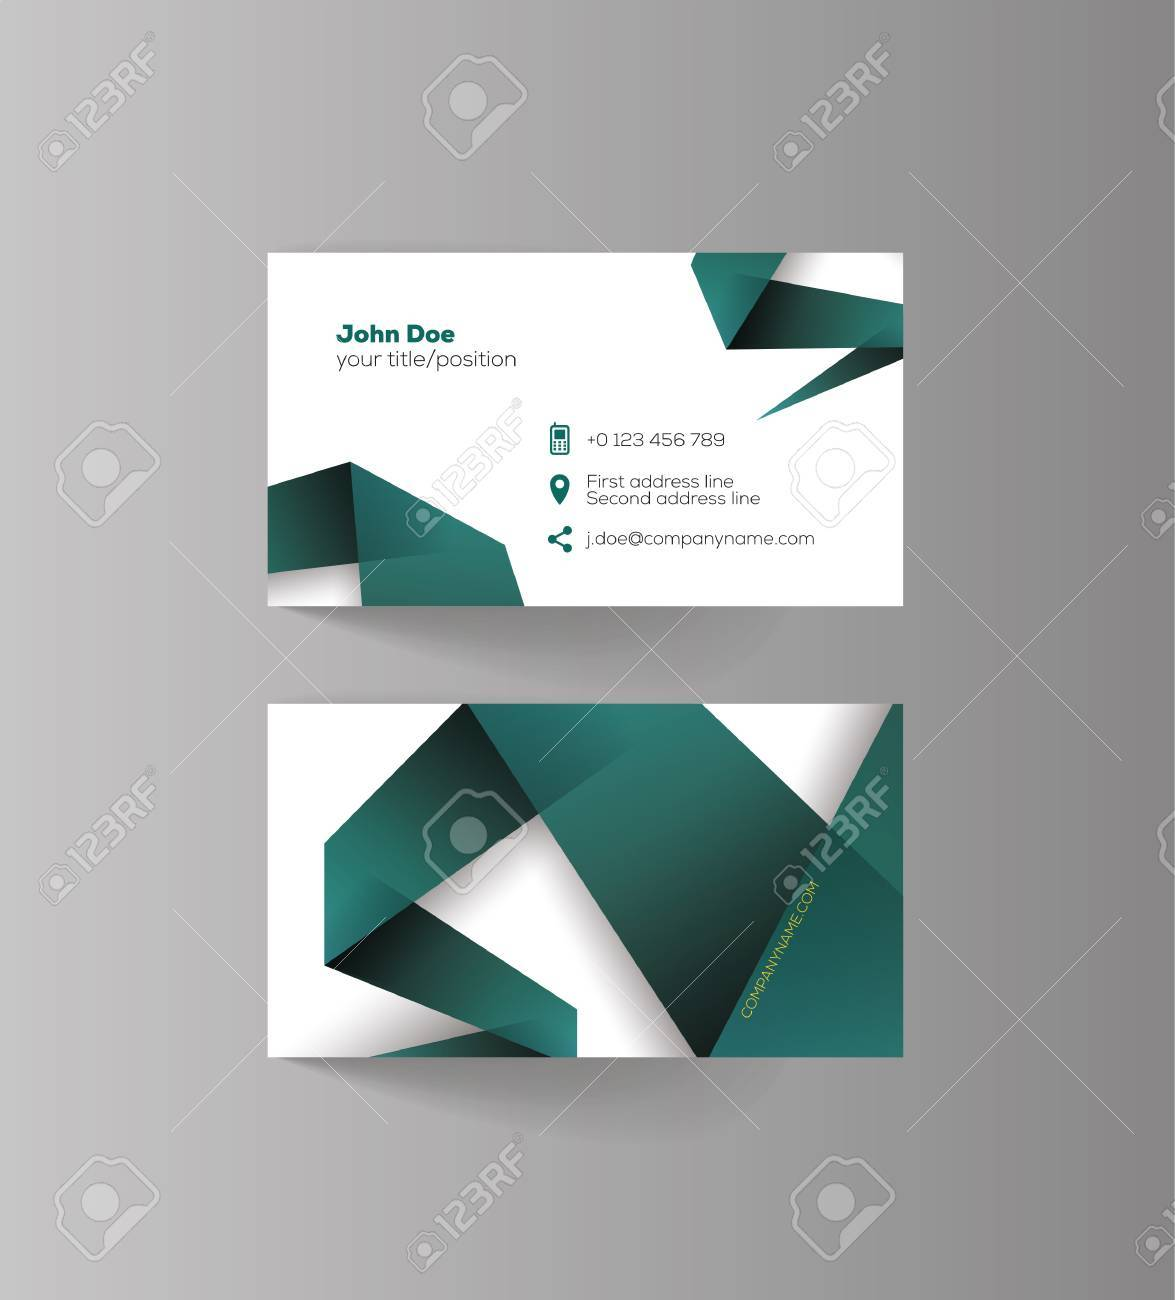 Business Card Design Idea For Your Company